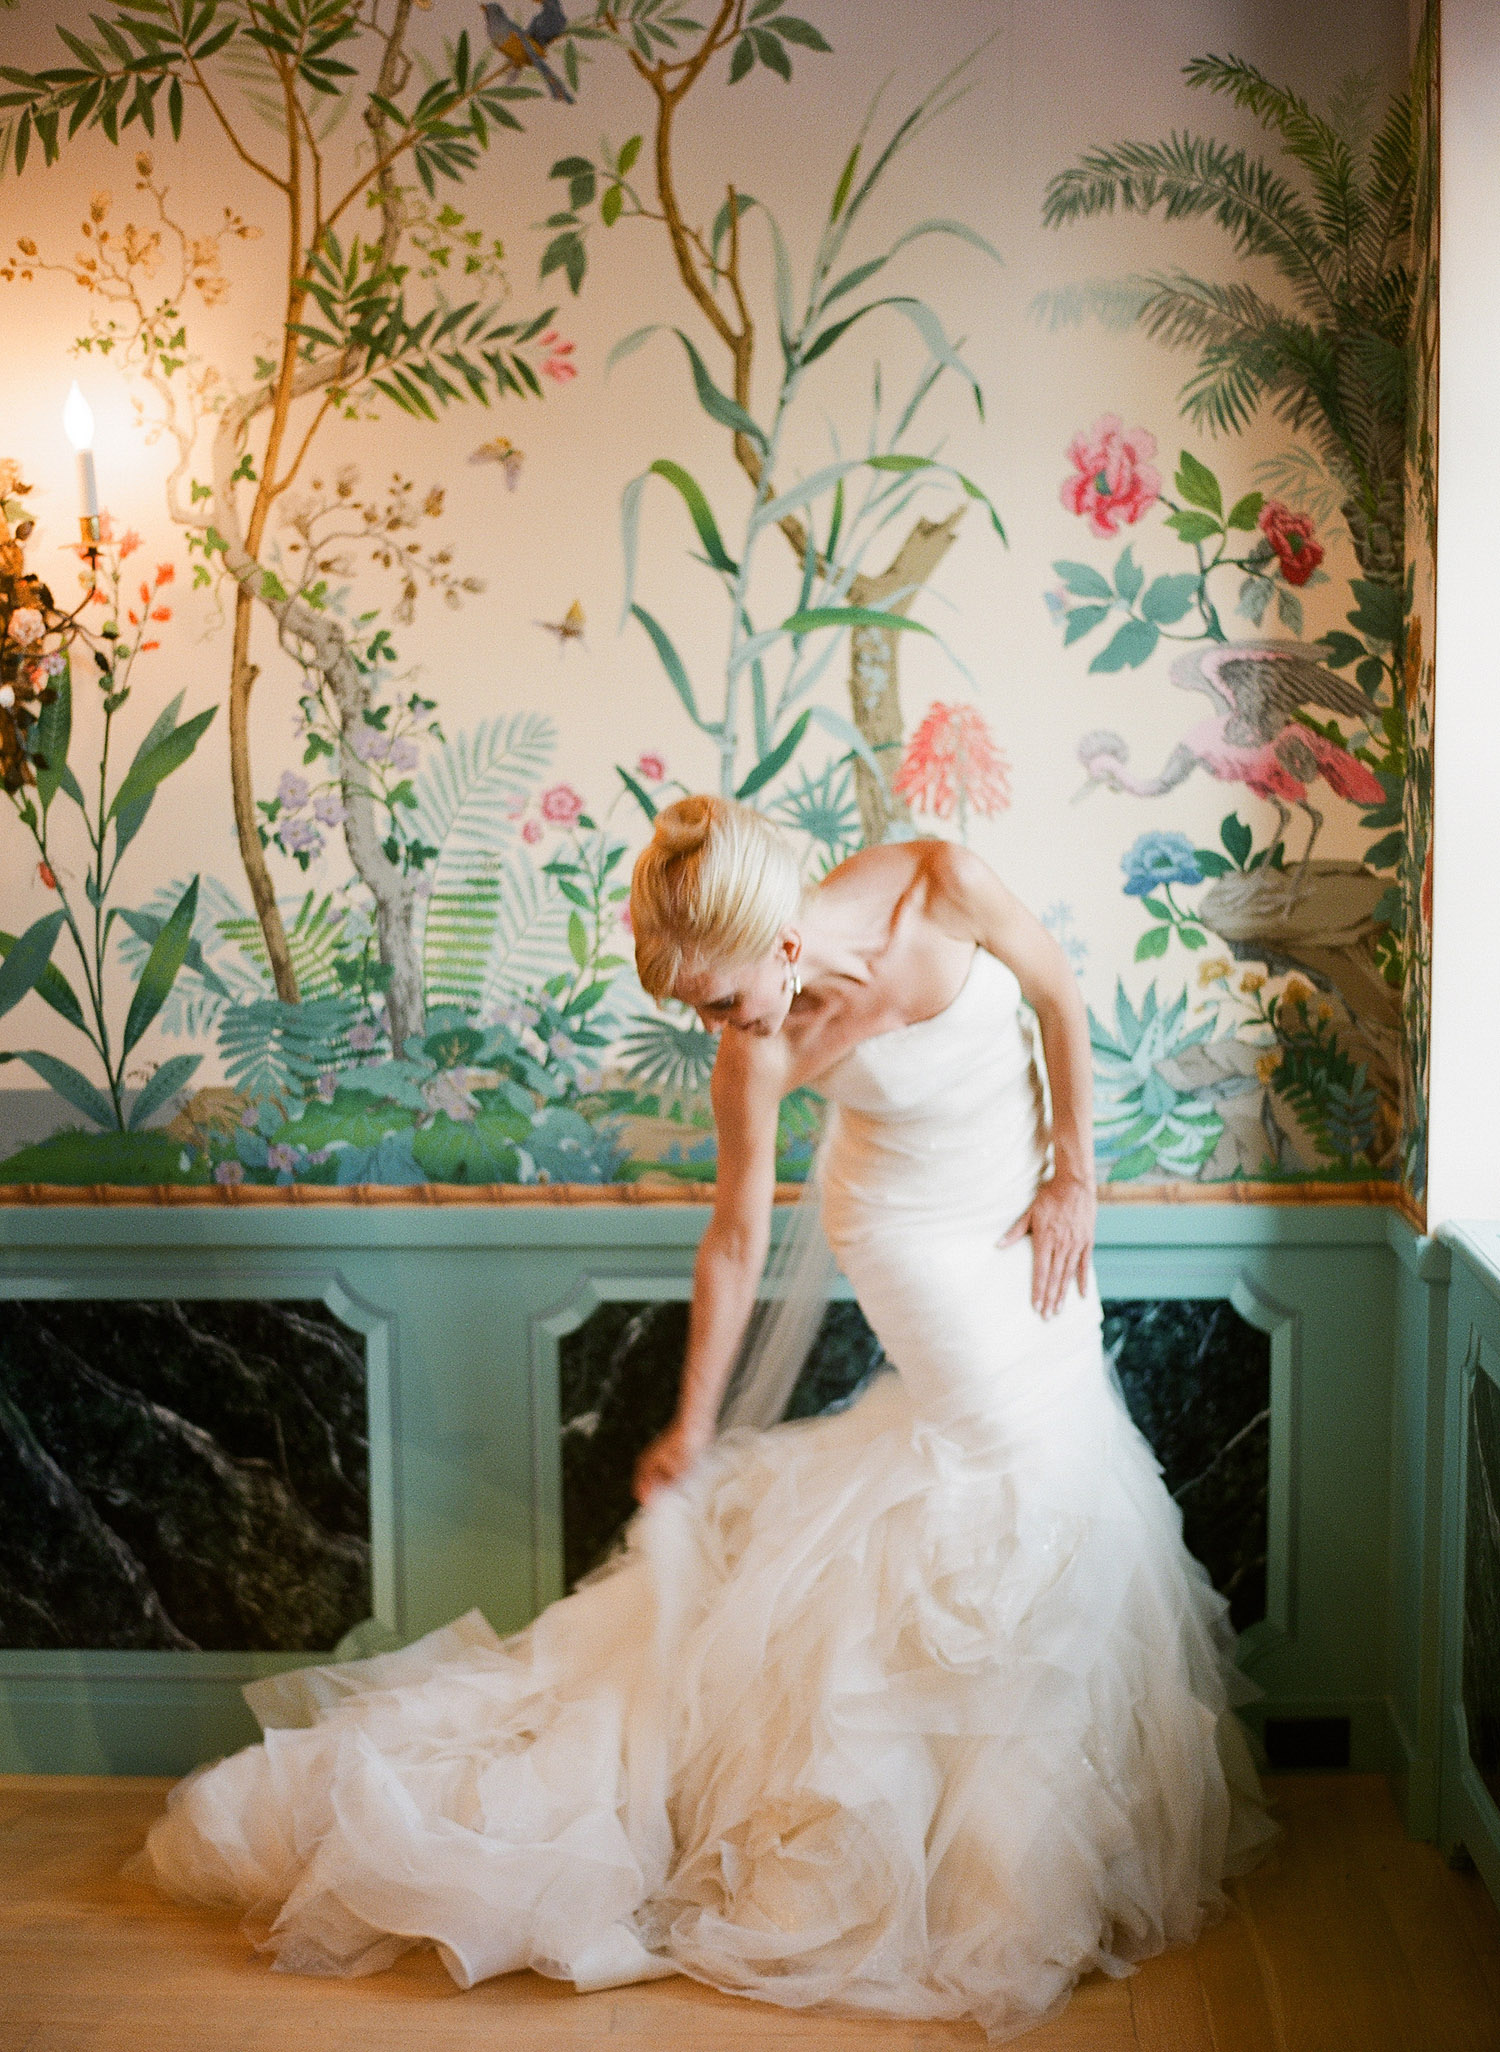 the bride adjusts her huge train in her designer wedding gown at this Italian Villa wedding at the Villa Terrace where Destination wedding photographer, Lexia Frank photographs the wedding entirely on film